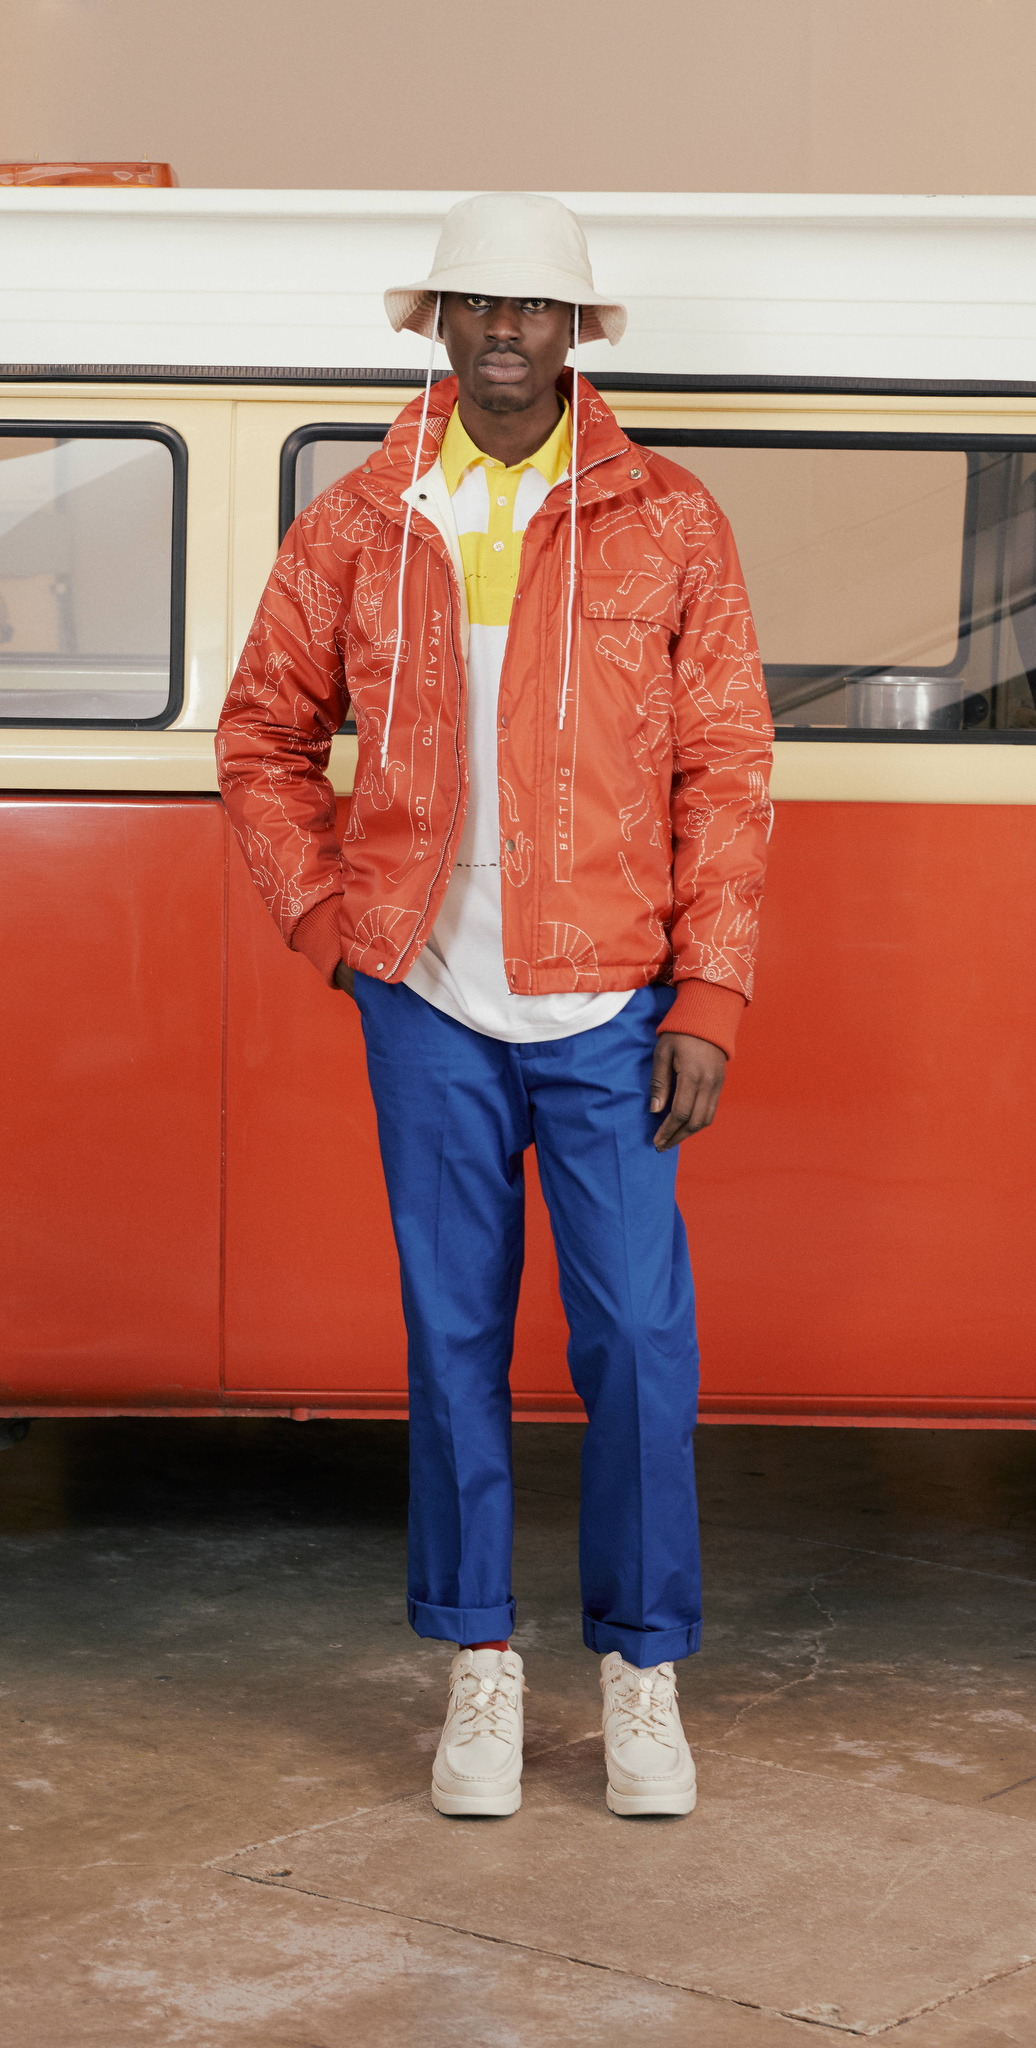 Band of Outsiders LFW Men's Fall 2020, photographed in London on 04 January 2020